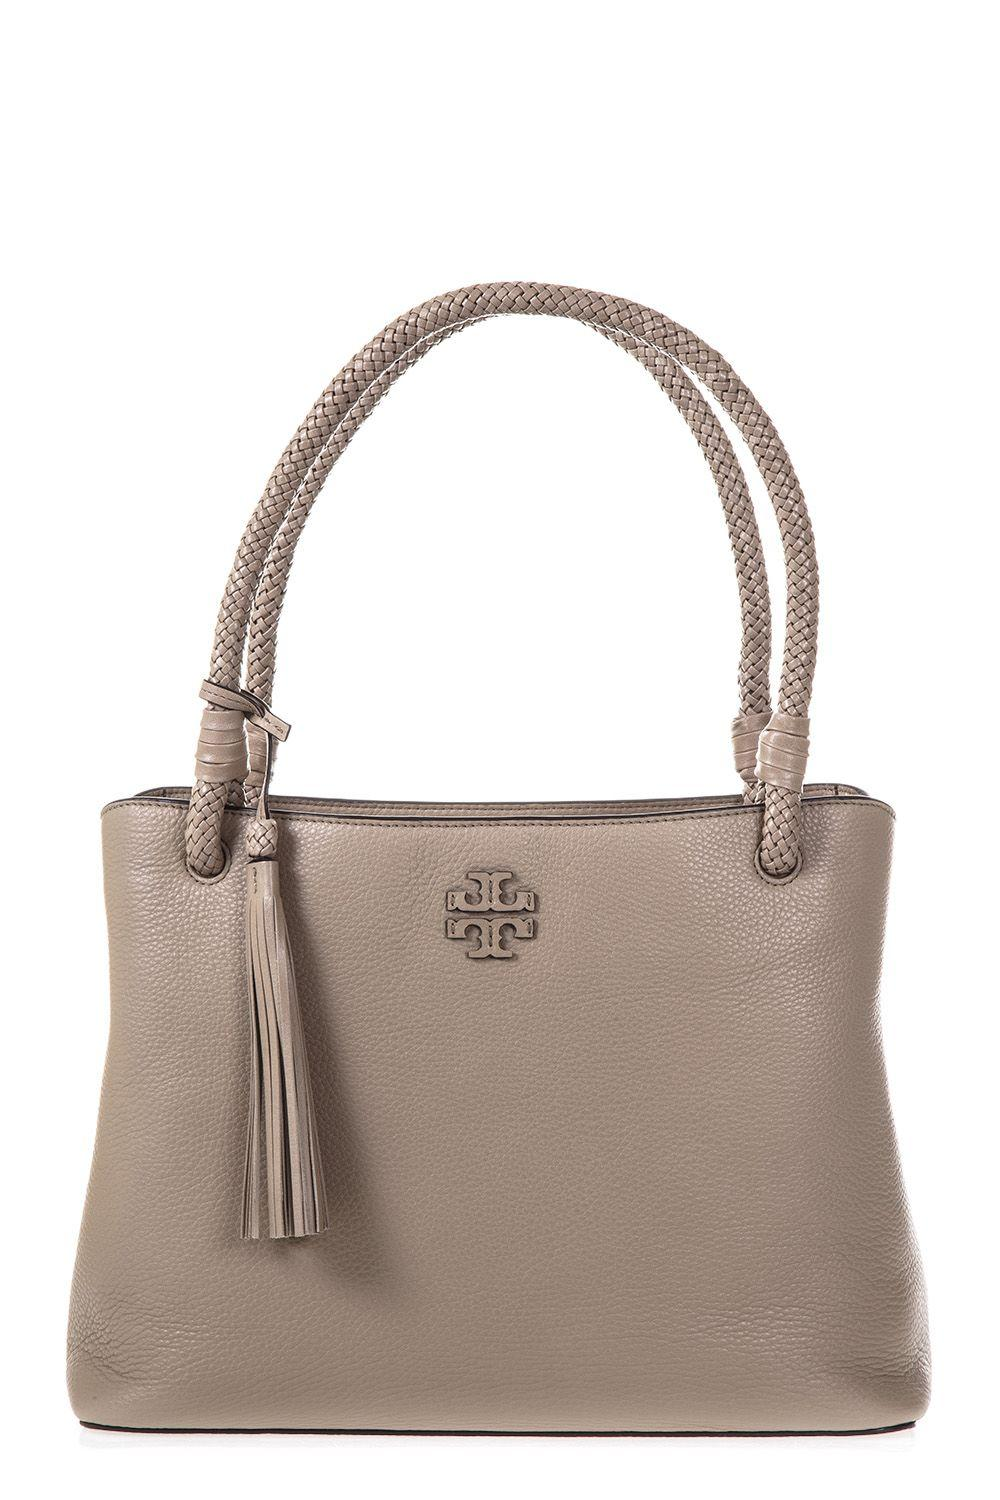 Tory Burch Taylor Triple Leather Tote In Soft Clay